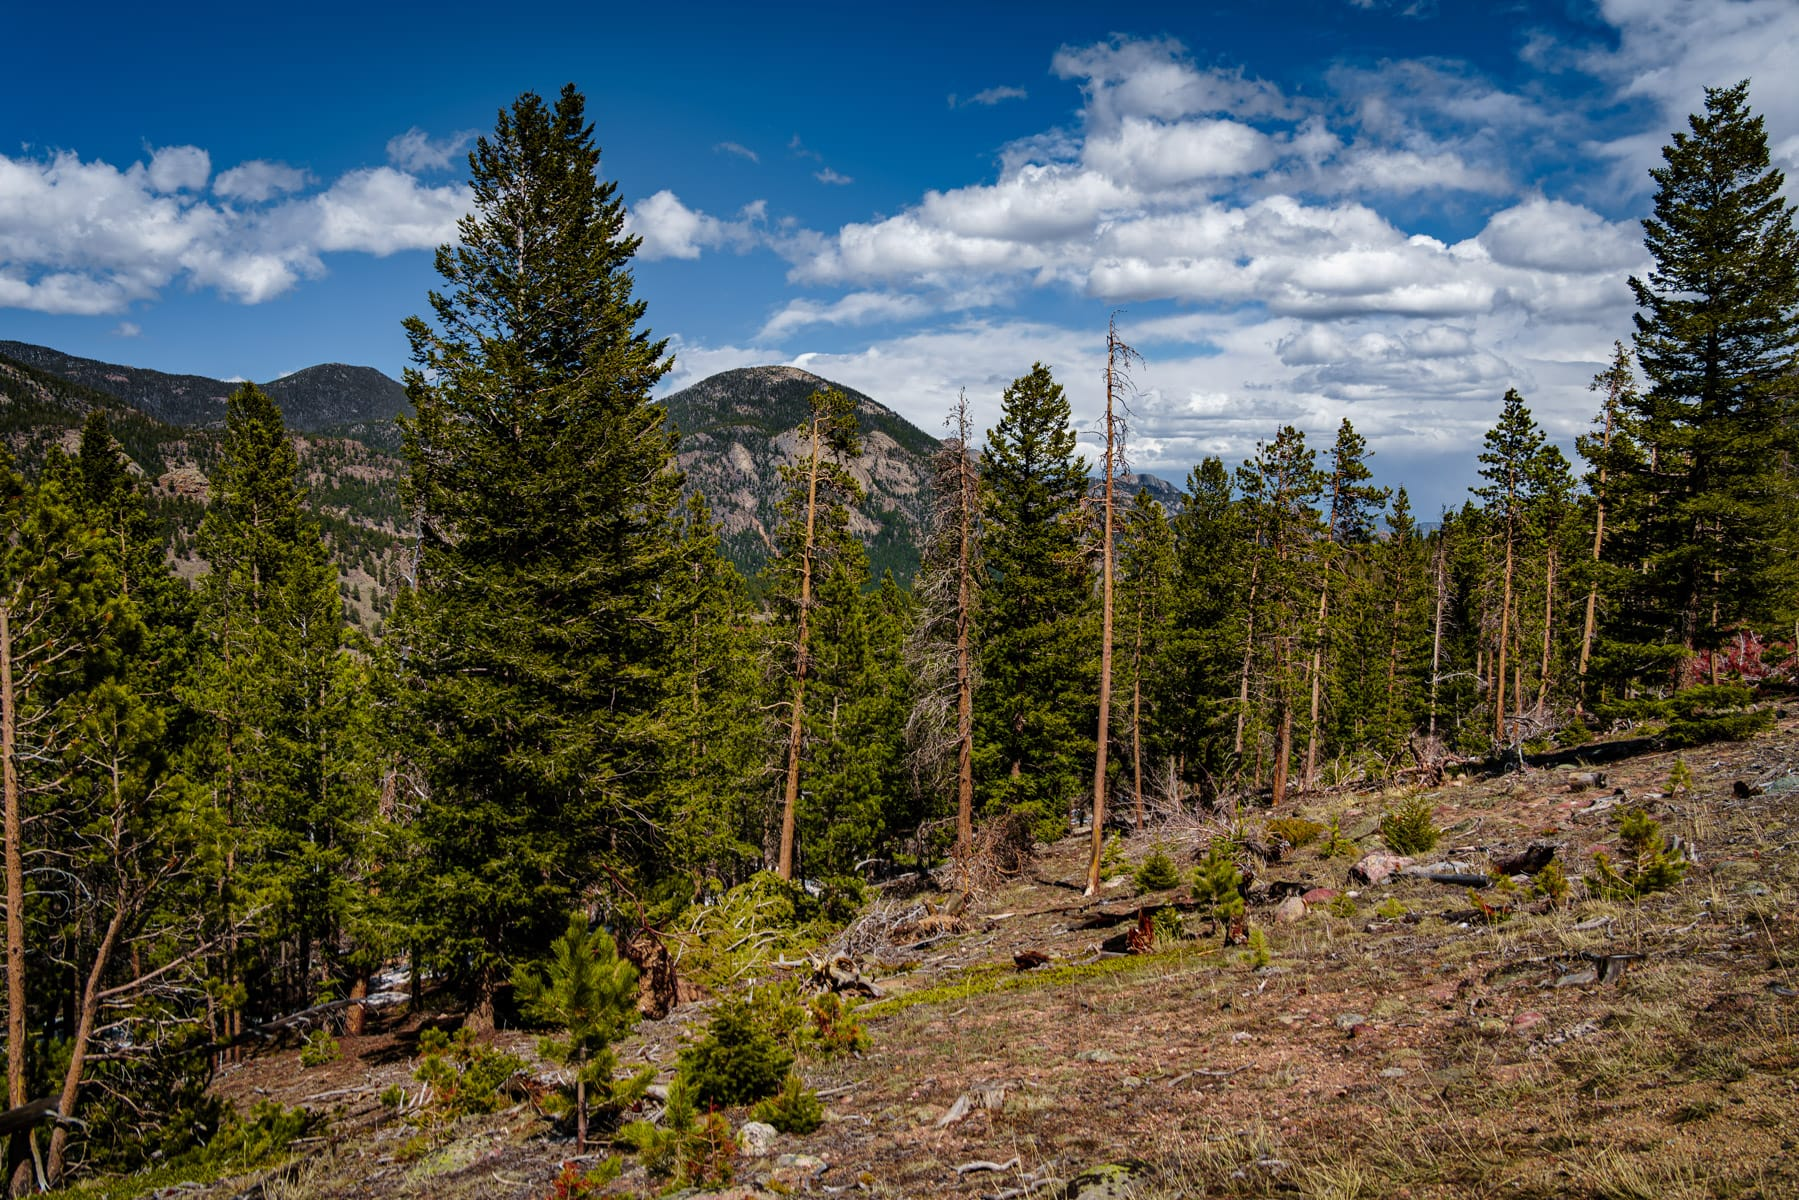 Evergreen trees grow on the side of a mountain at Colorado's Rocky Mountain National Park.